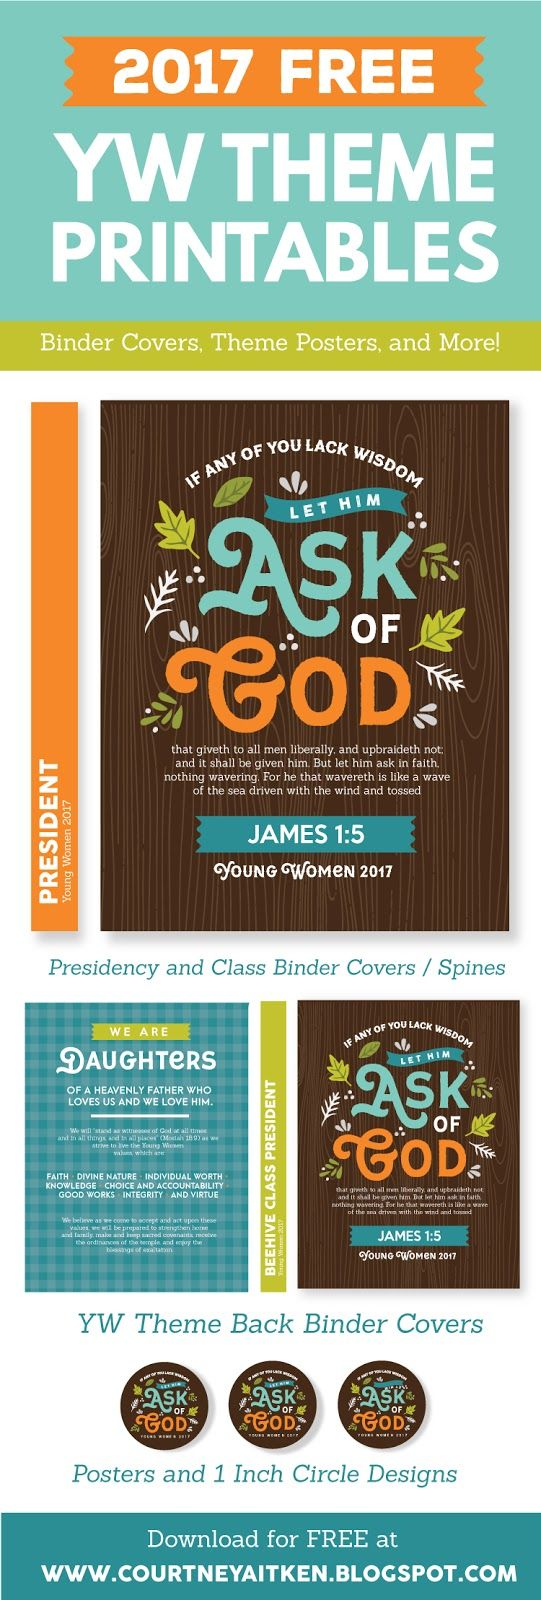 DARLING 2017 Young Women Theme Printables! Including binder covers, posters, spines, and decorative circles! ALL FREE!